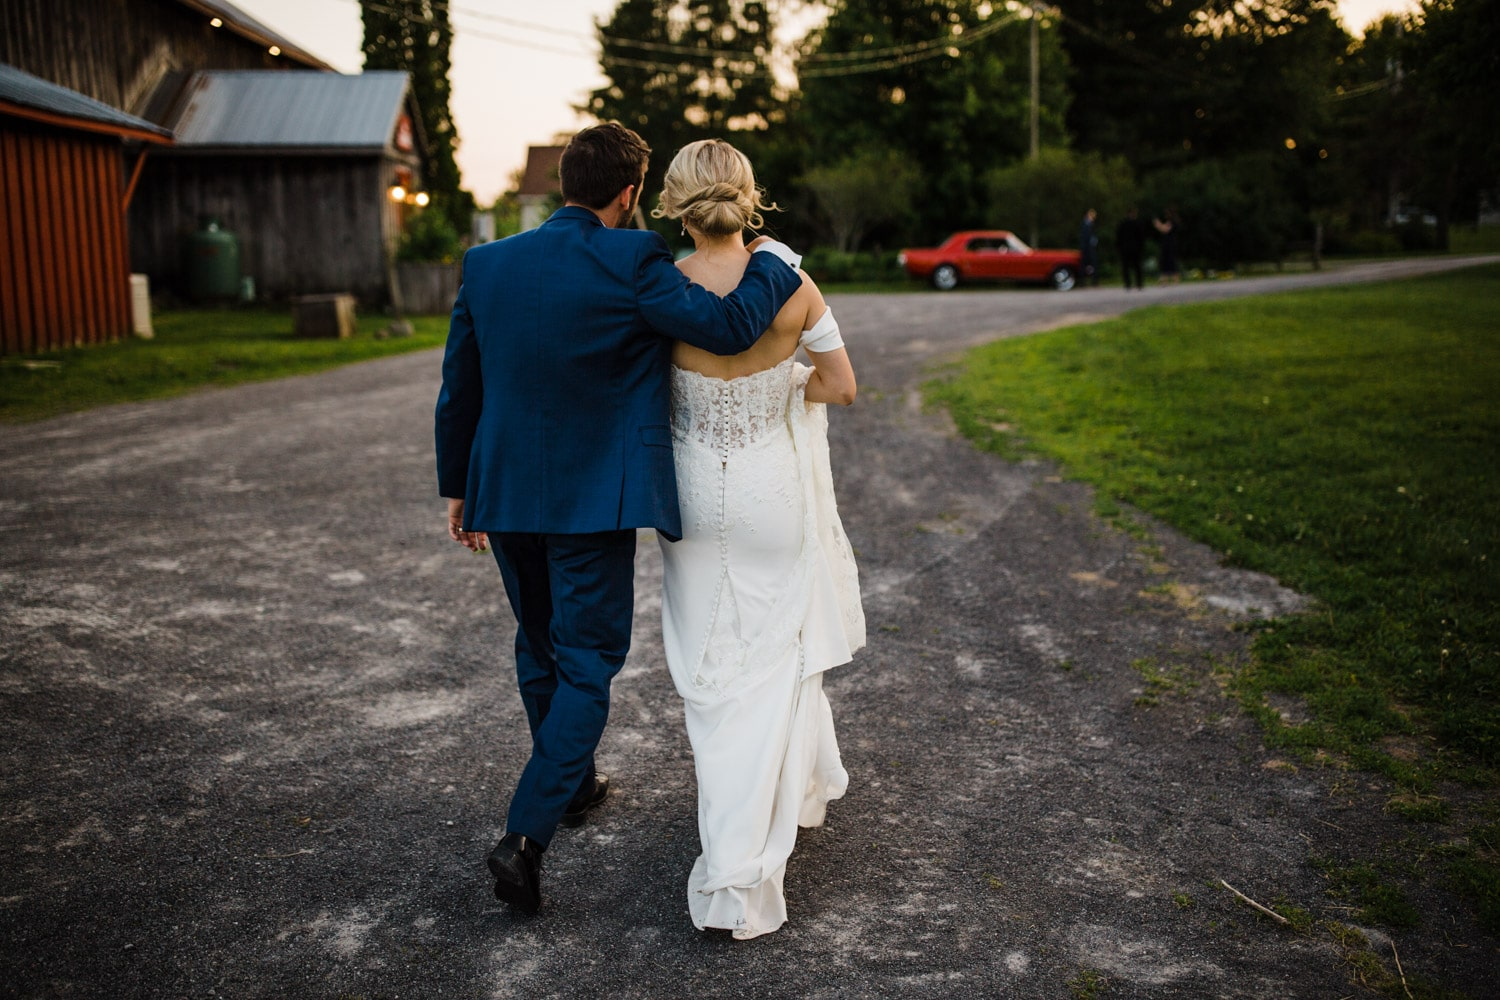 bride and groom walk during sunset - strathmere wedding